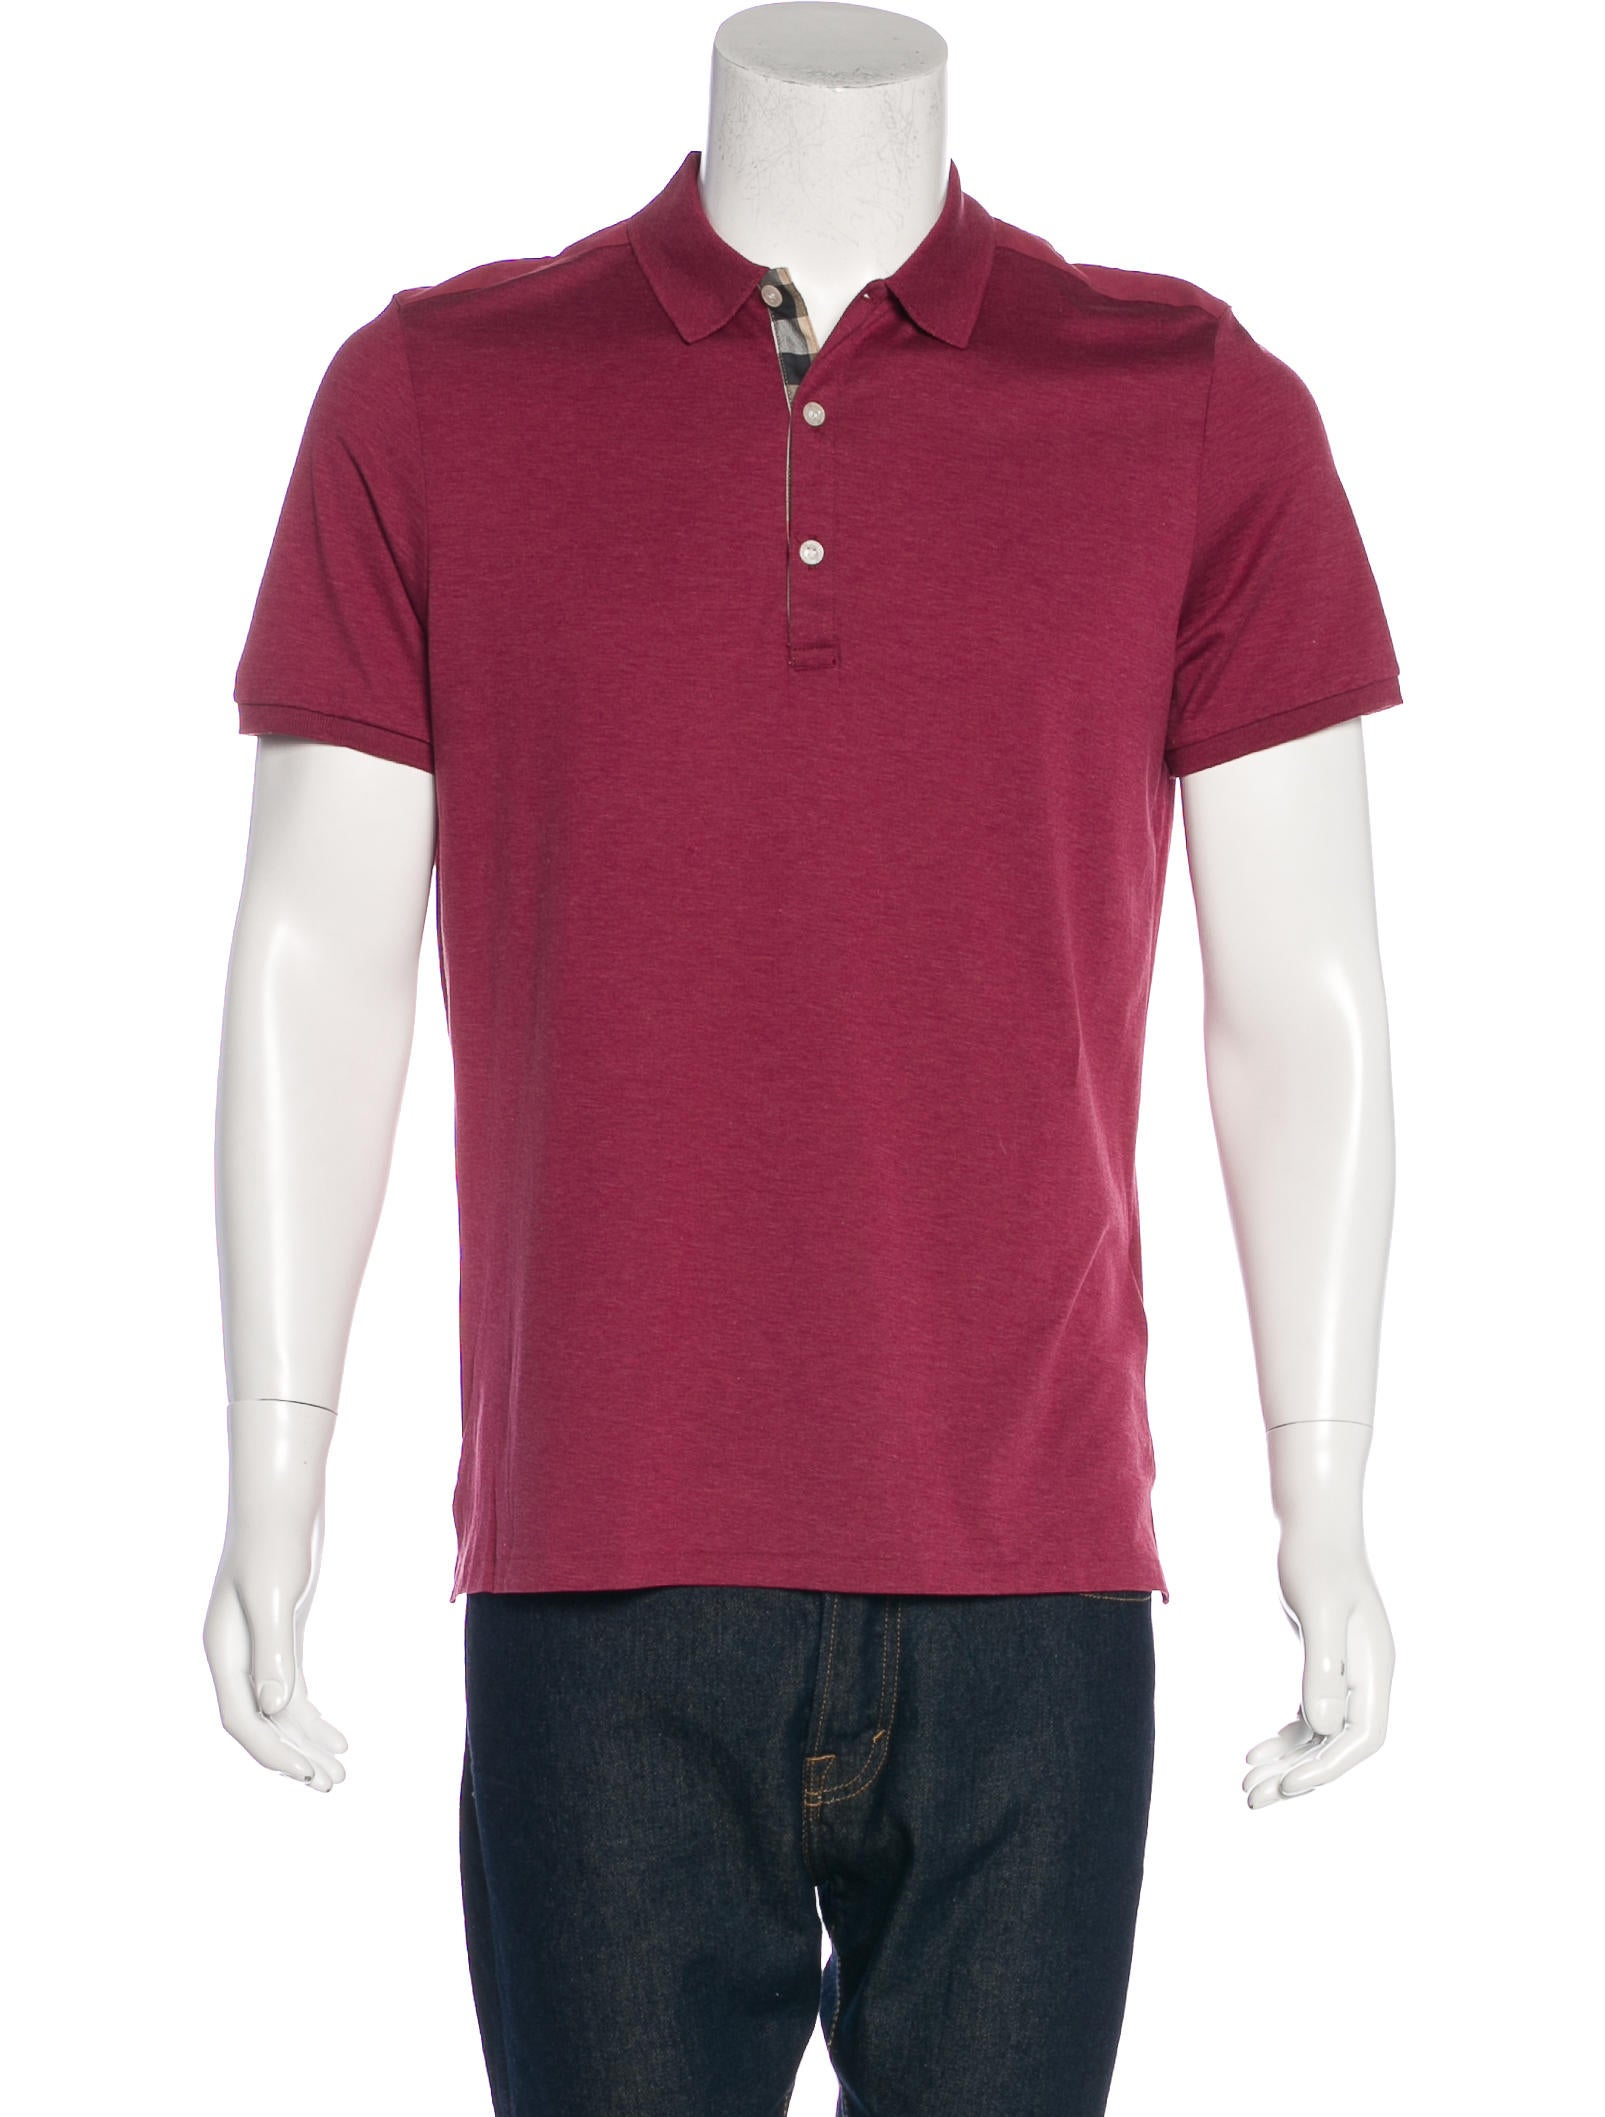 Burberry Brit Jersey Knit Polo Shirt Clothing Bbr28667